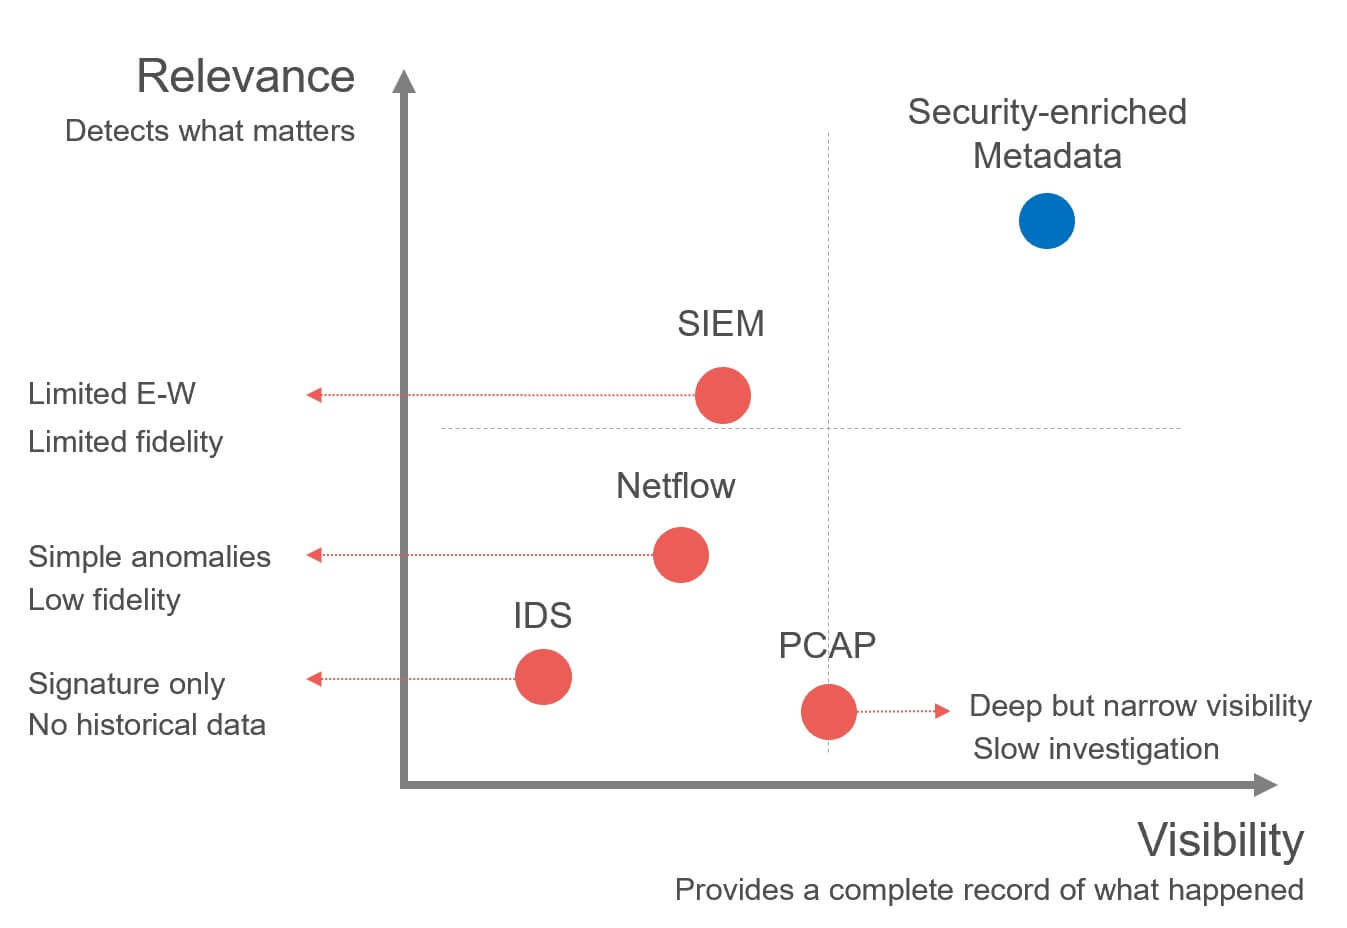 graph showing SIEM, Netflow, IDS, PCAP and security-enriched metadata on a scale of relevance and visibility. Security-enriched metadata is the highest for both.